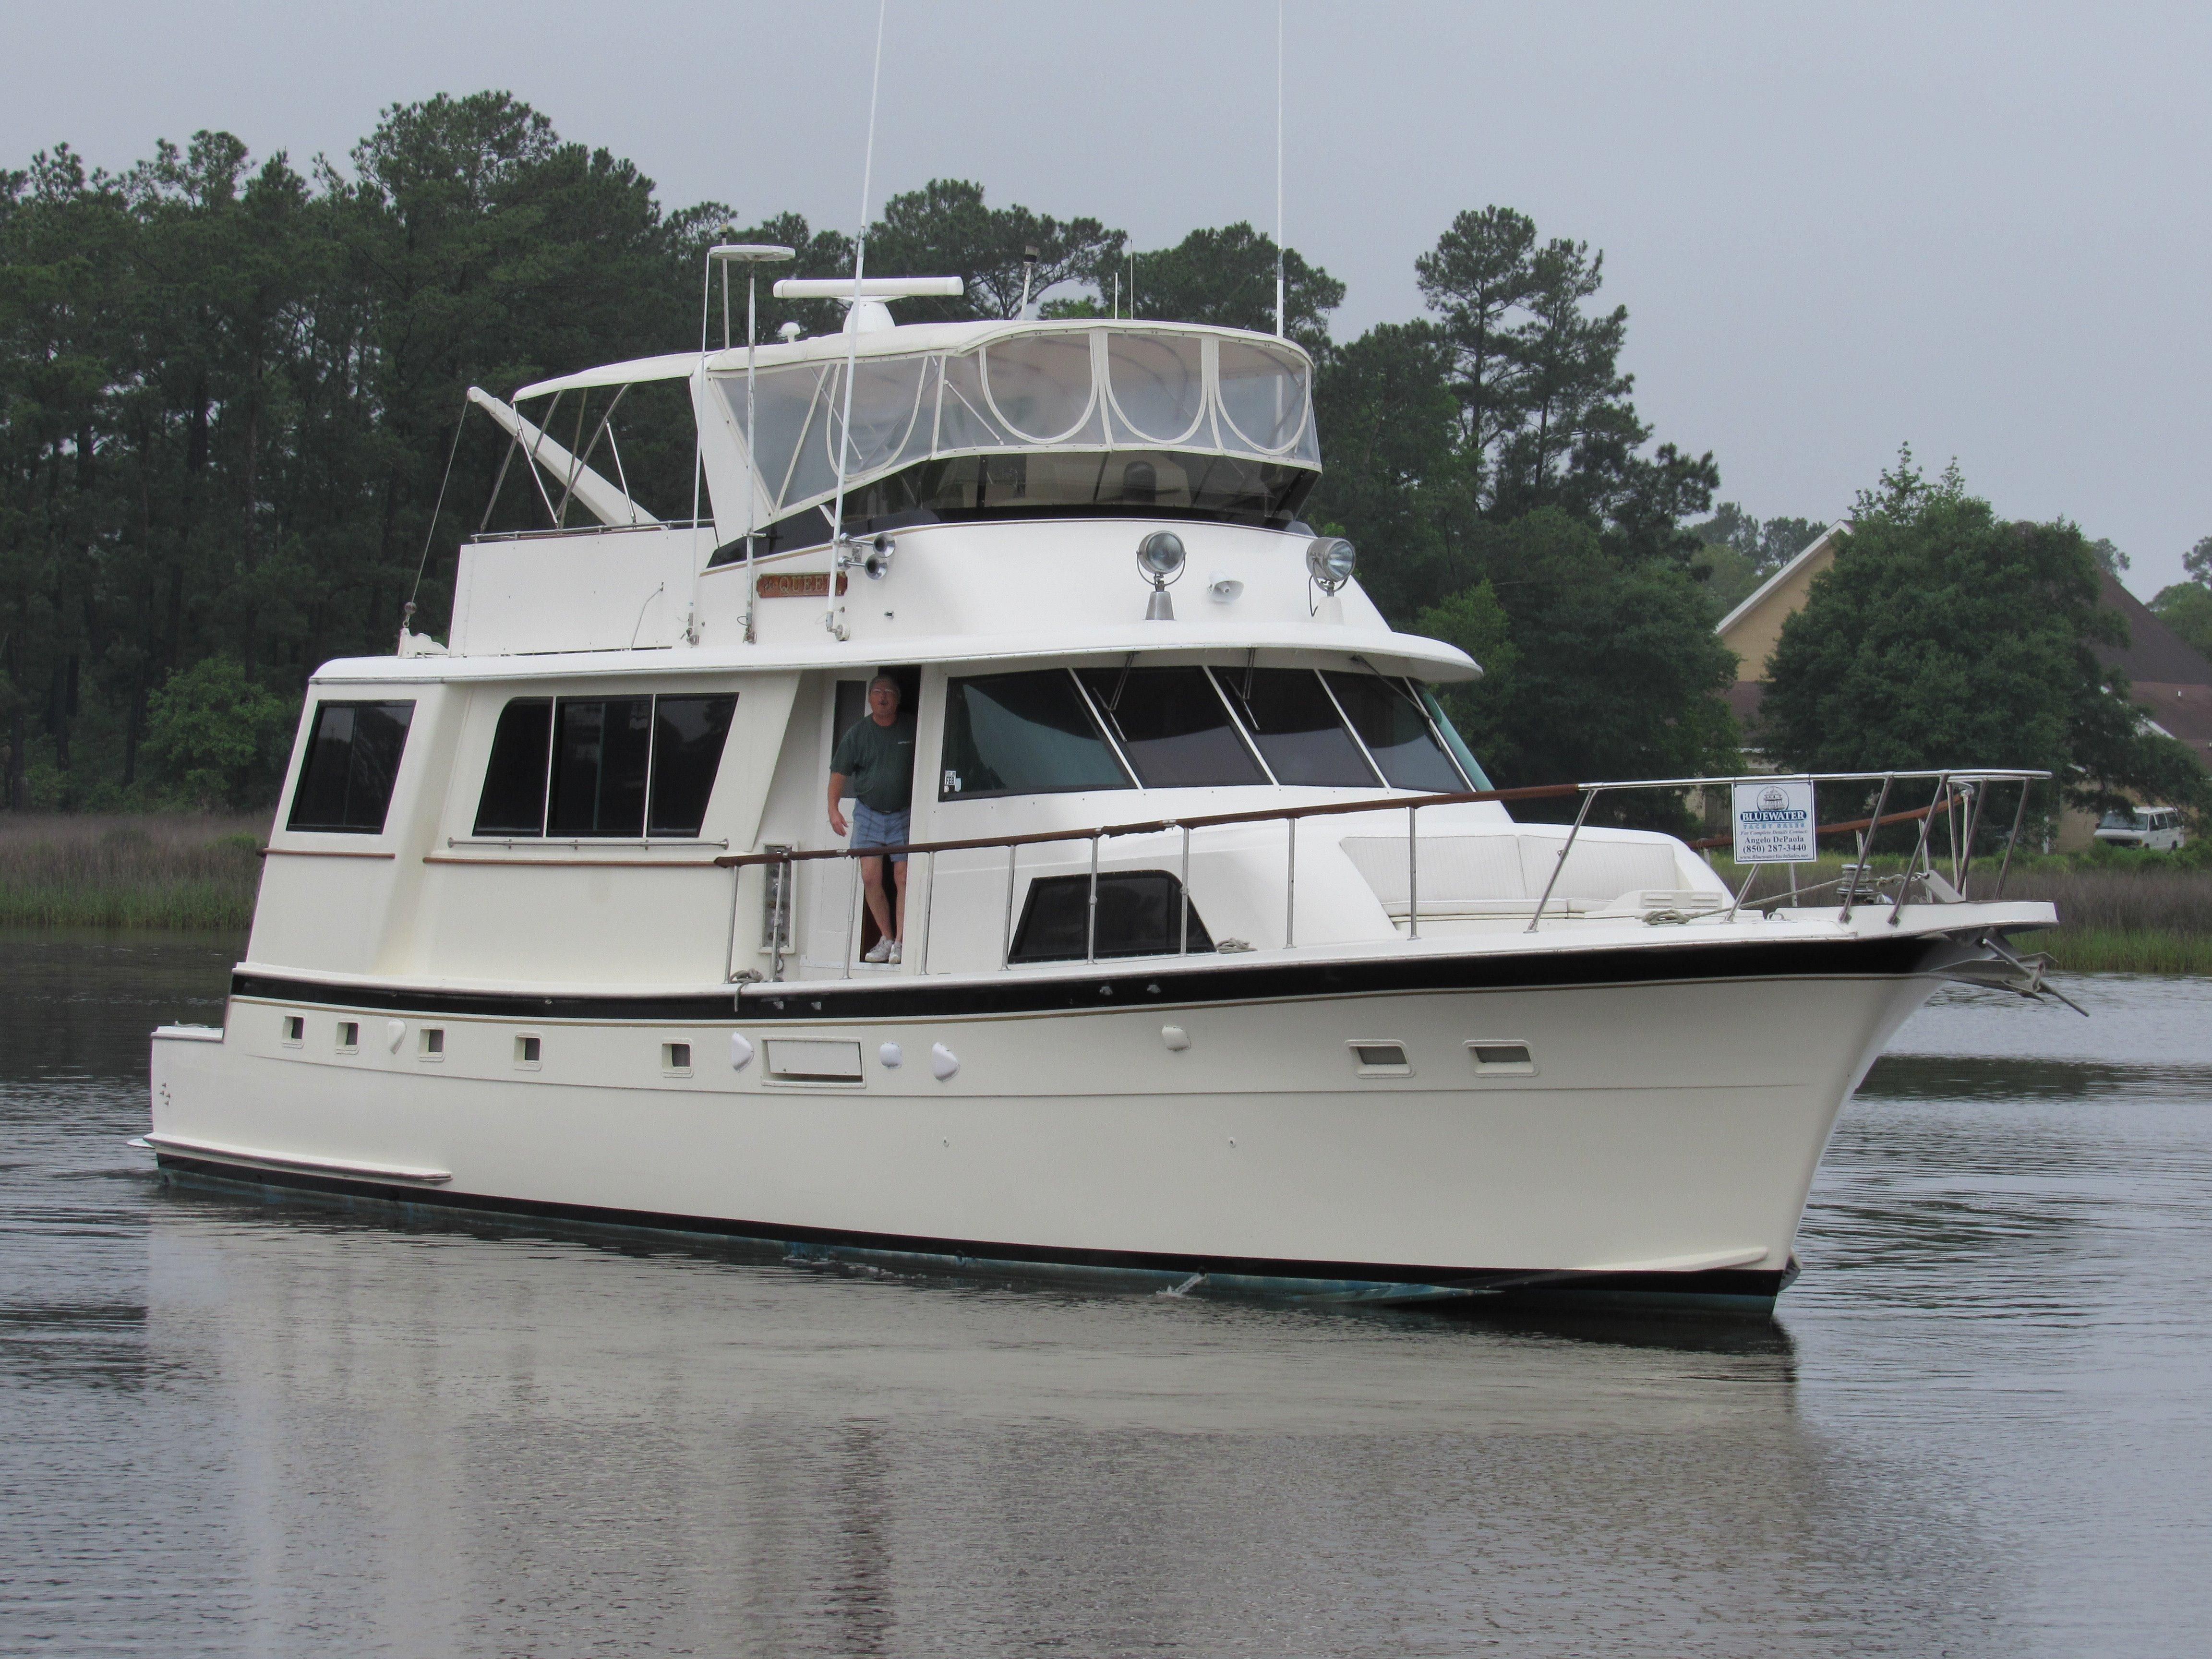 1977 hatteras cockpit motor yacht power boat for sale for Large motor yachts for sale